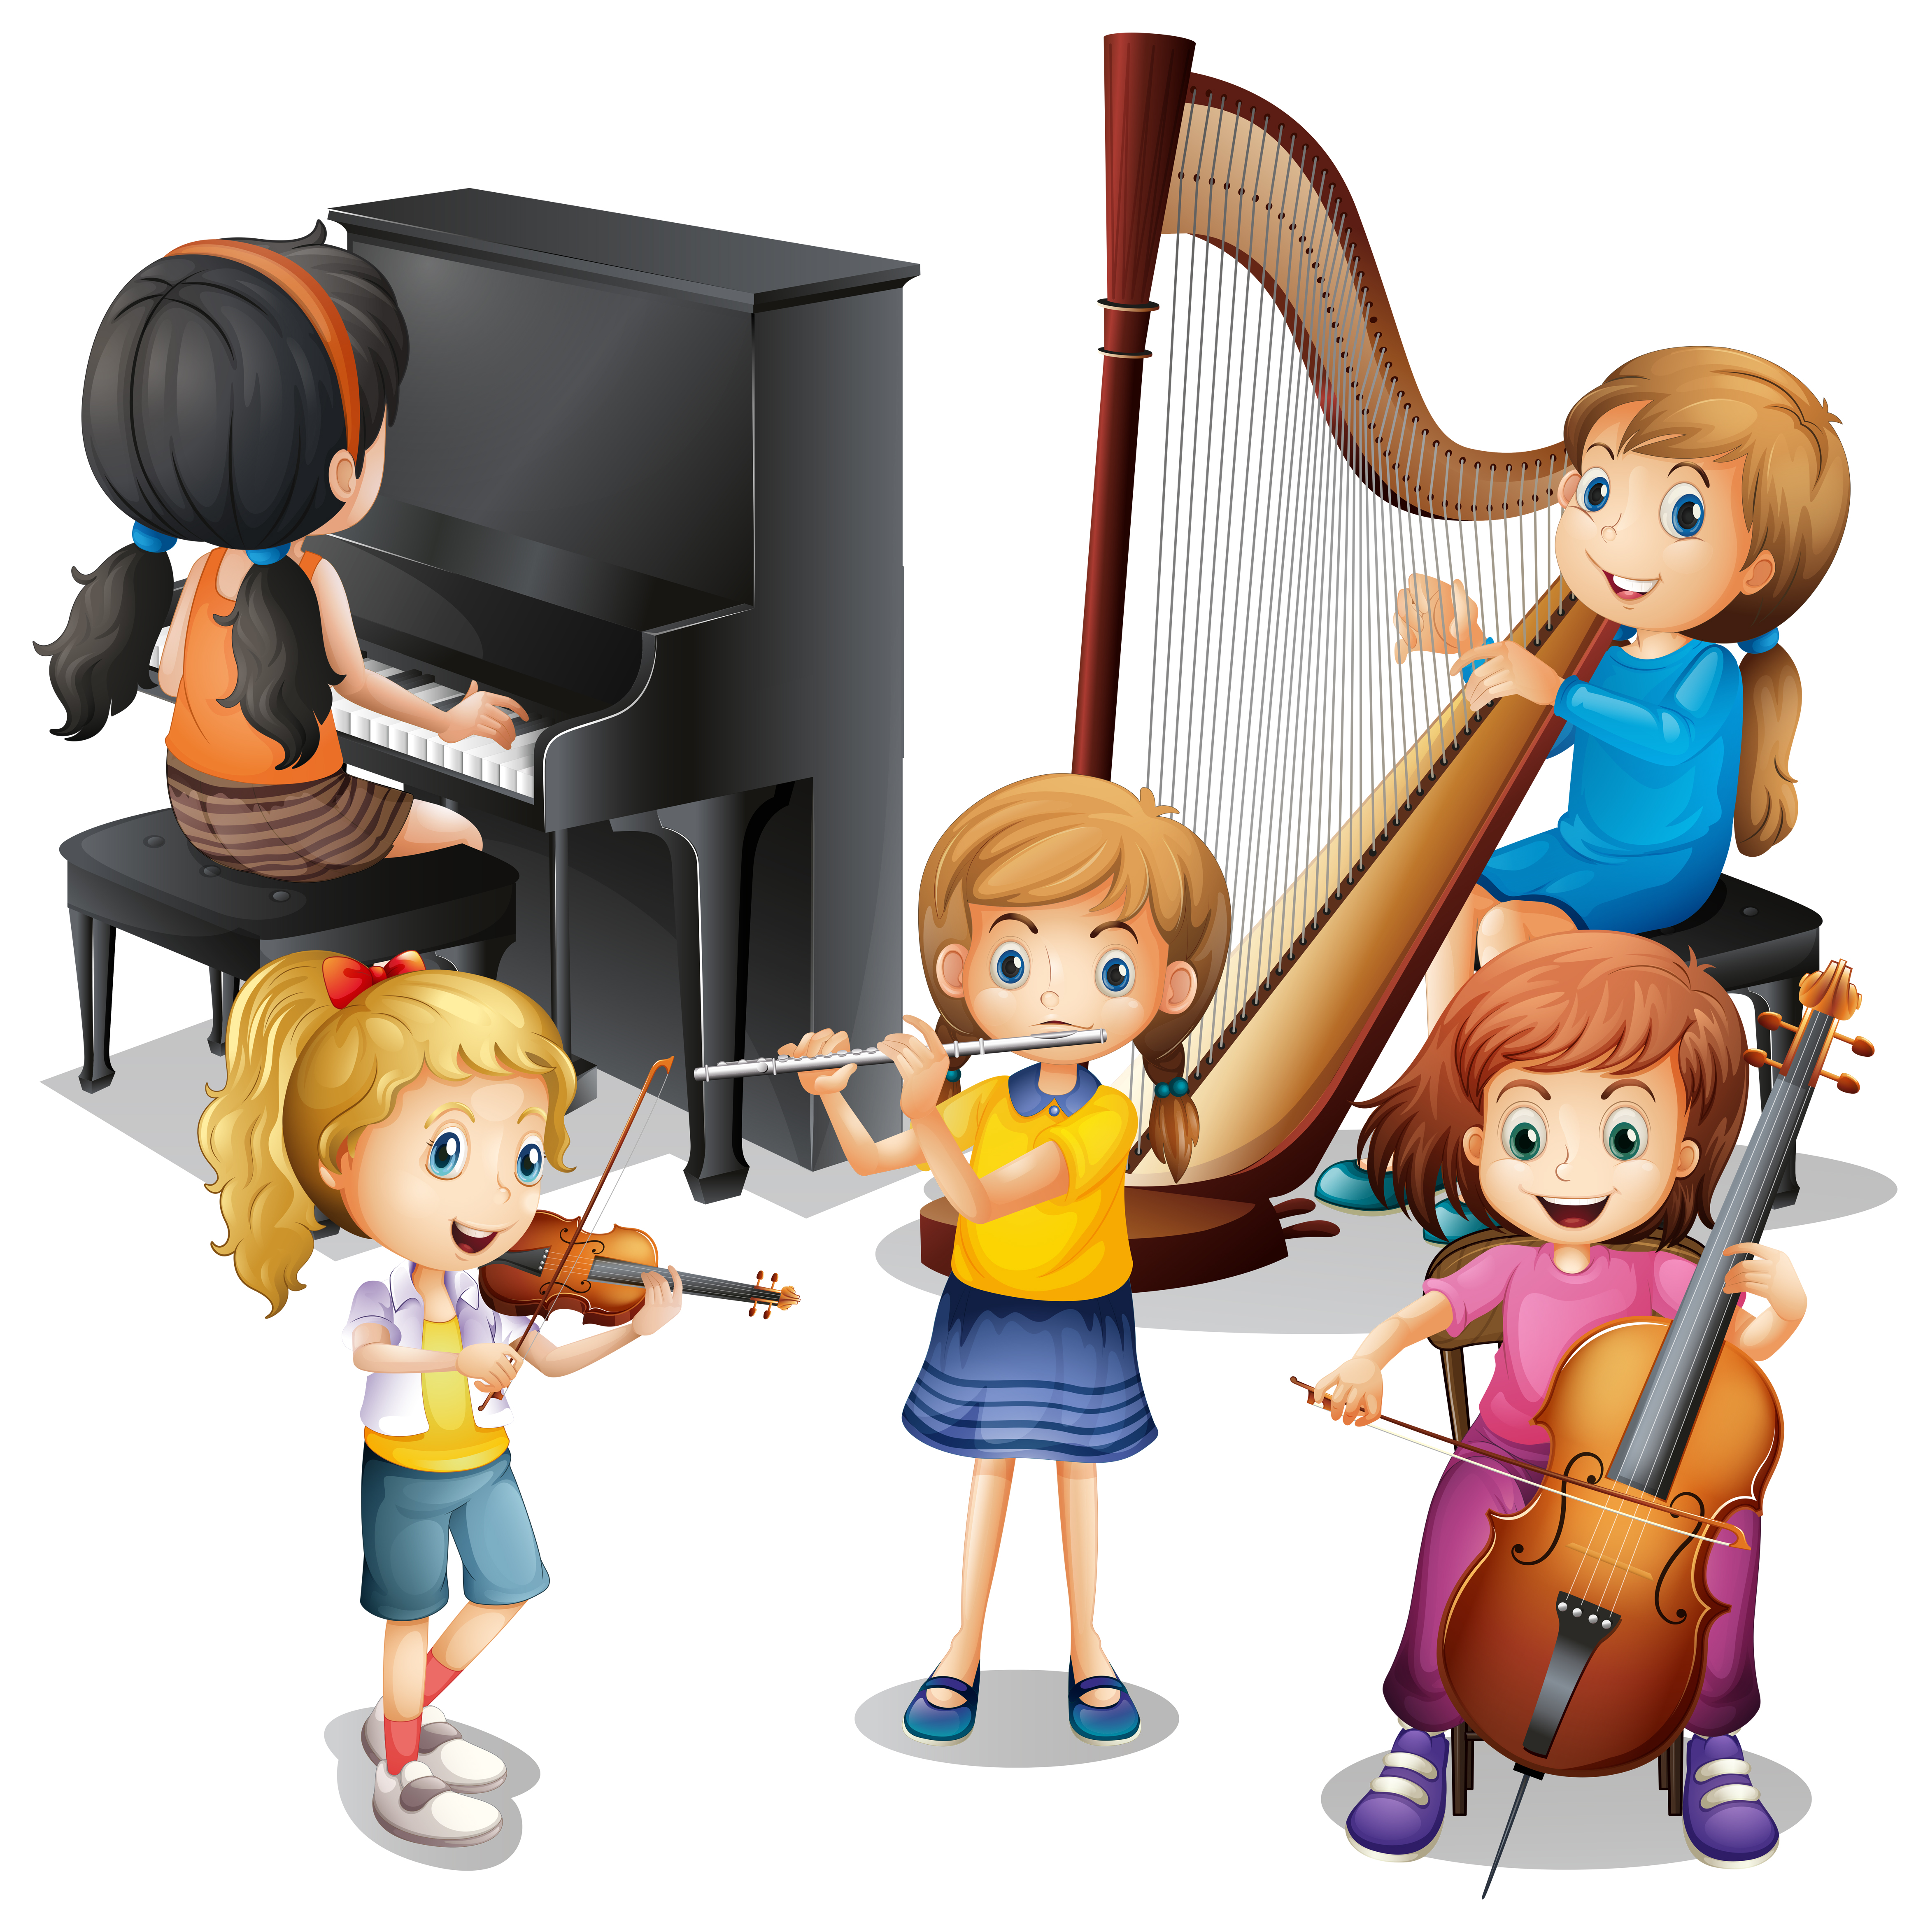 music playing clipart children classical room many vector musical illustration clip violin piano cartoon child flute illustrations different instrument instruments